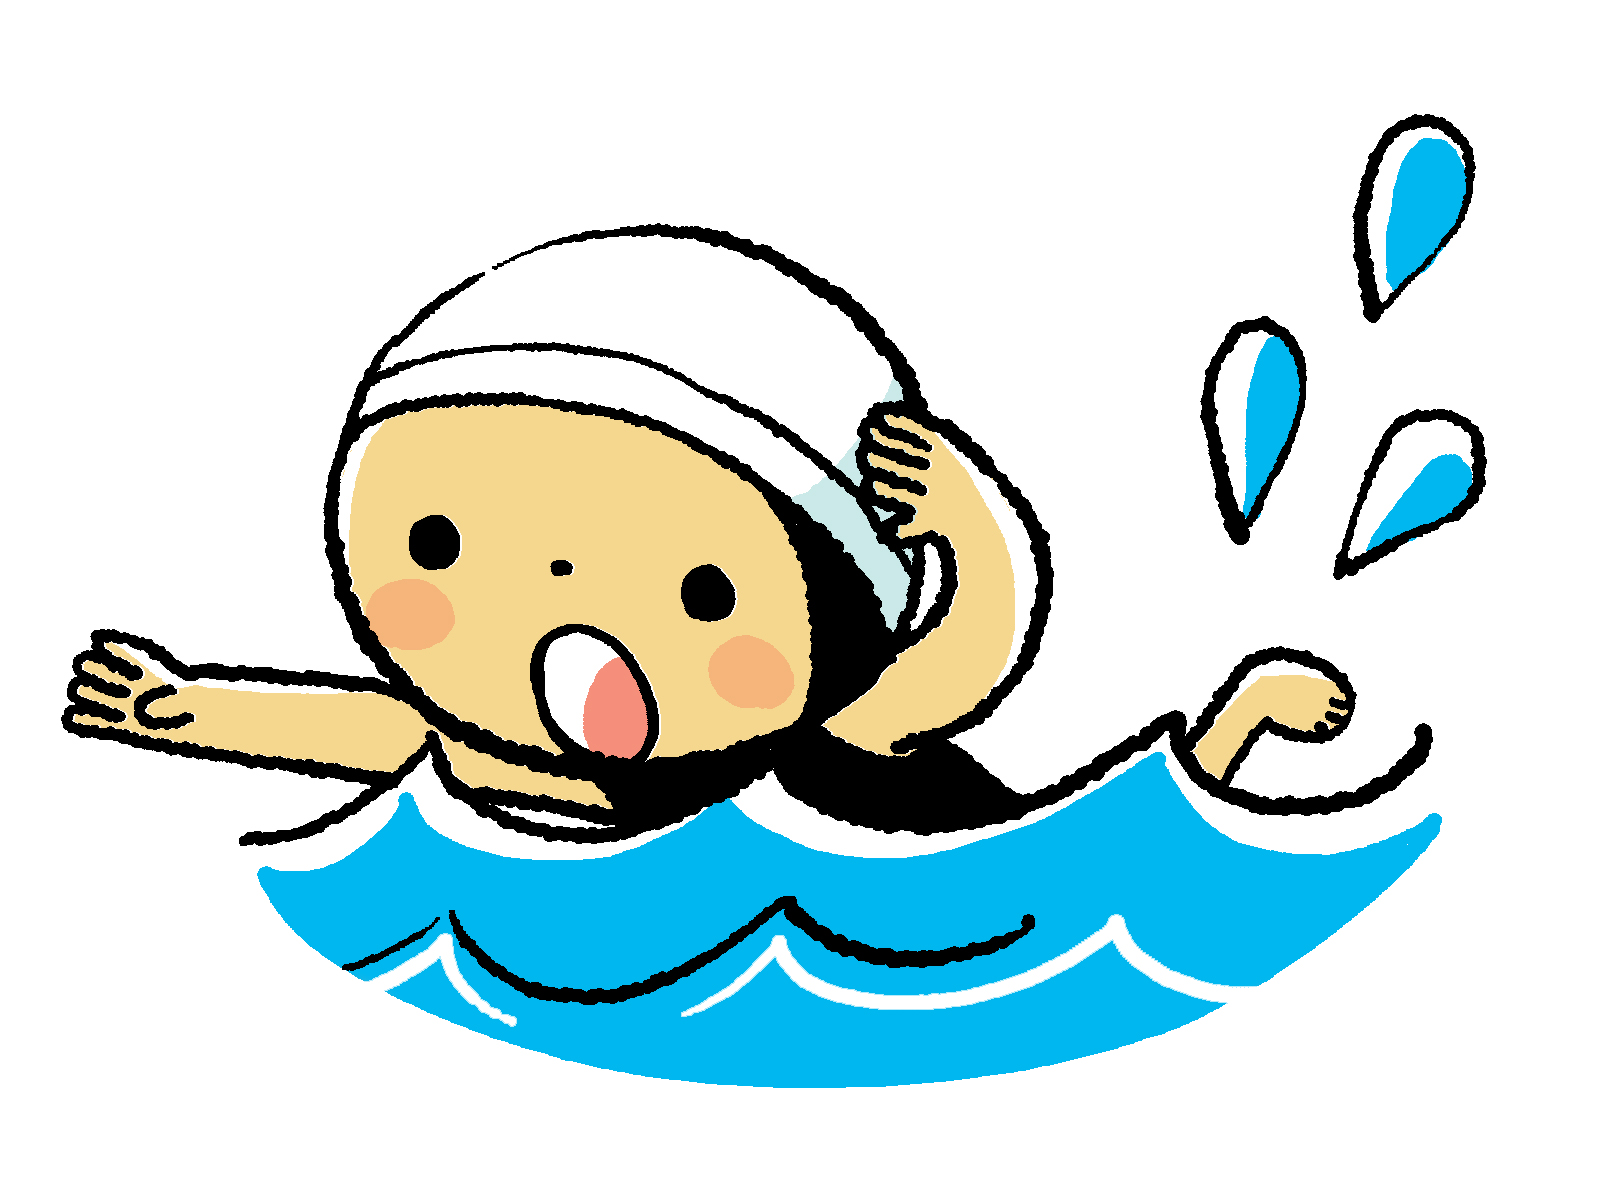 Learning to swim clipart png royalty free download Little Girl Swimming Clipart | Free download best Little Girl ... png royalty free download